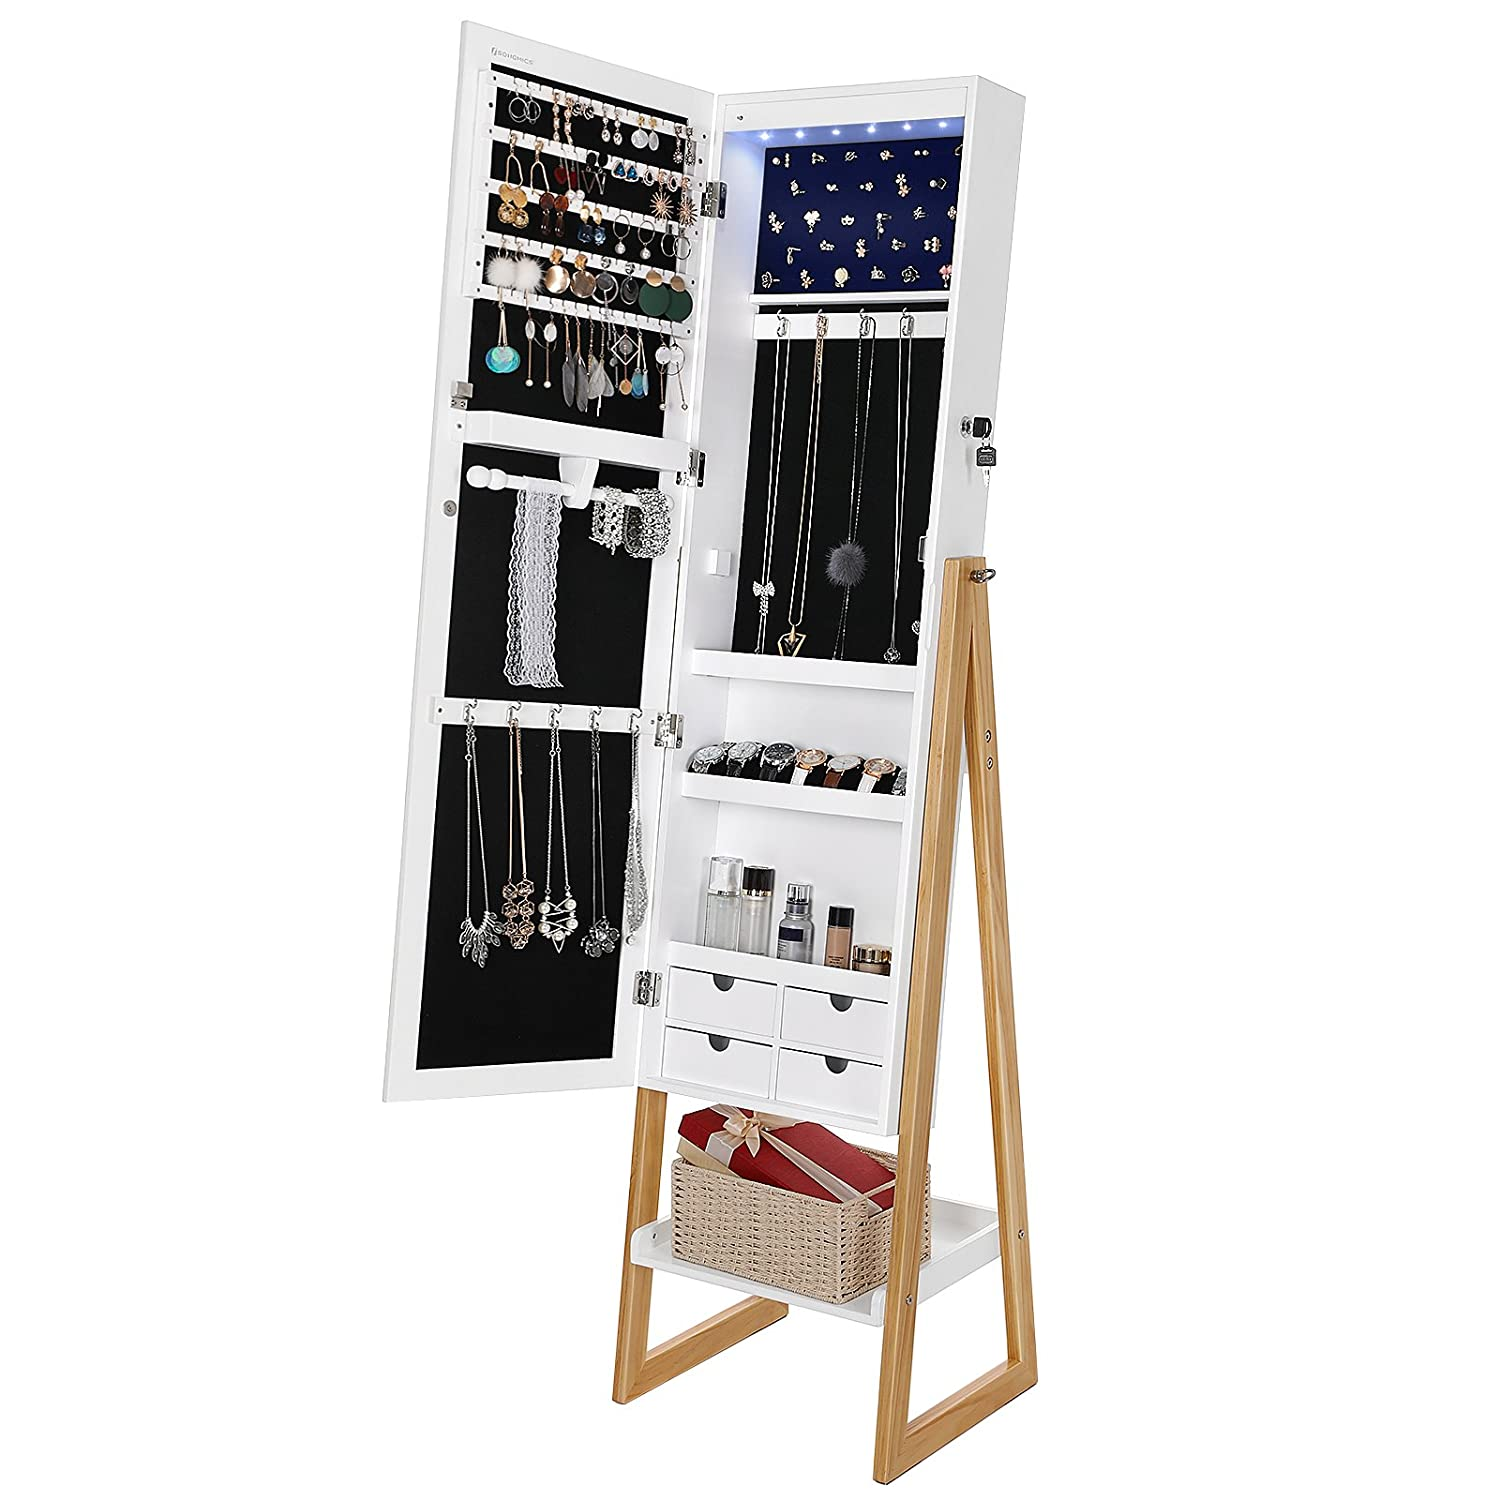 SONGMICS 6 LEDs Jewelry Cabinet Lockable Standing Jewelry Armoire Organizer with Mirror 4 Drawers White & Natural UJBC72WN